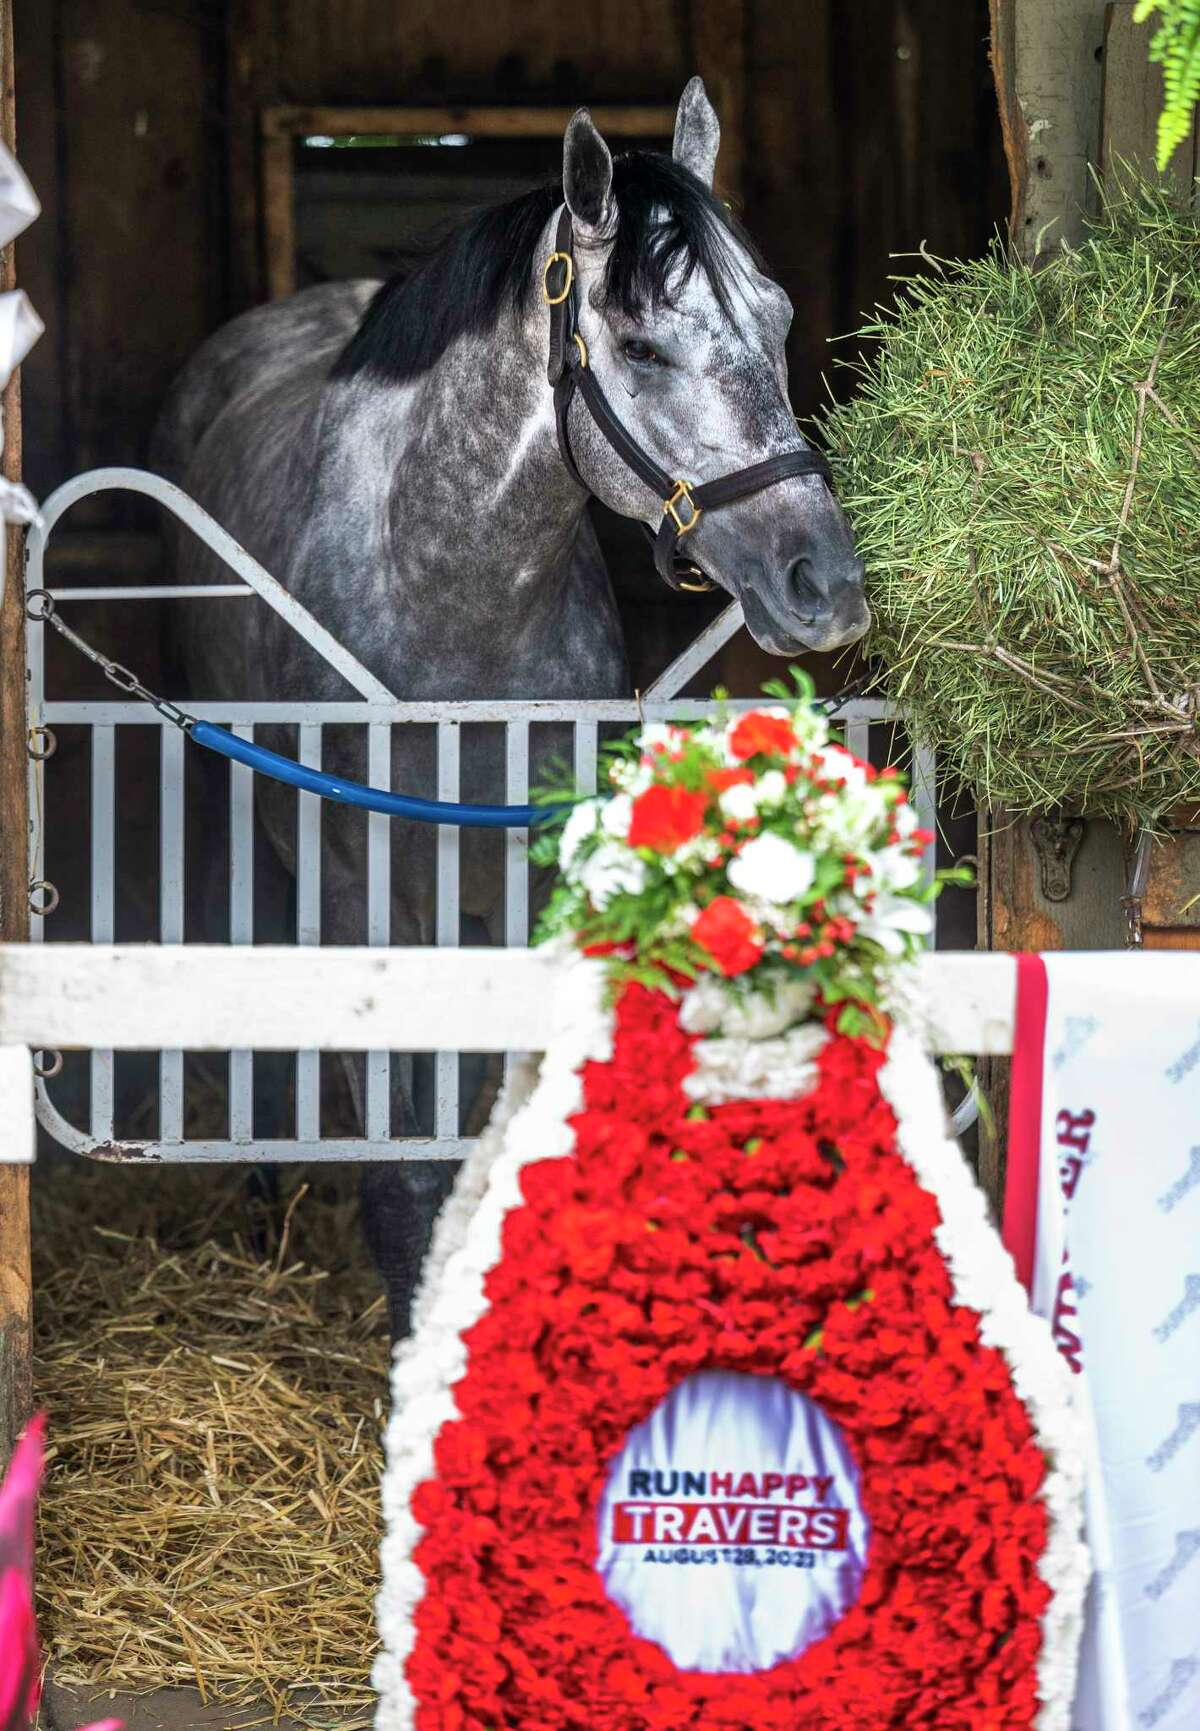 Essential Quality enjoys some hay the morning after his victory in the 152nd Runhappy Travers States at the Saratoga Race Course Sunday Aug 29, 2021 in Saratoga Springs, N.Y. Special to the Times Union Photo Special to the Times Union by Skip Dickstein